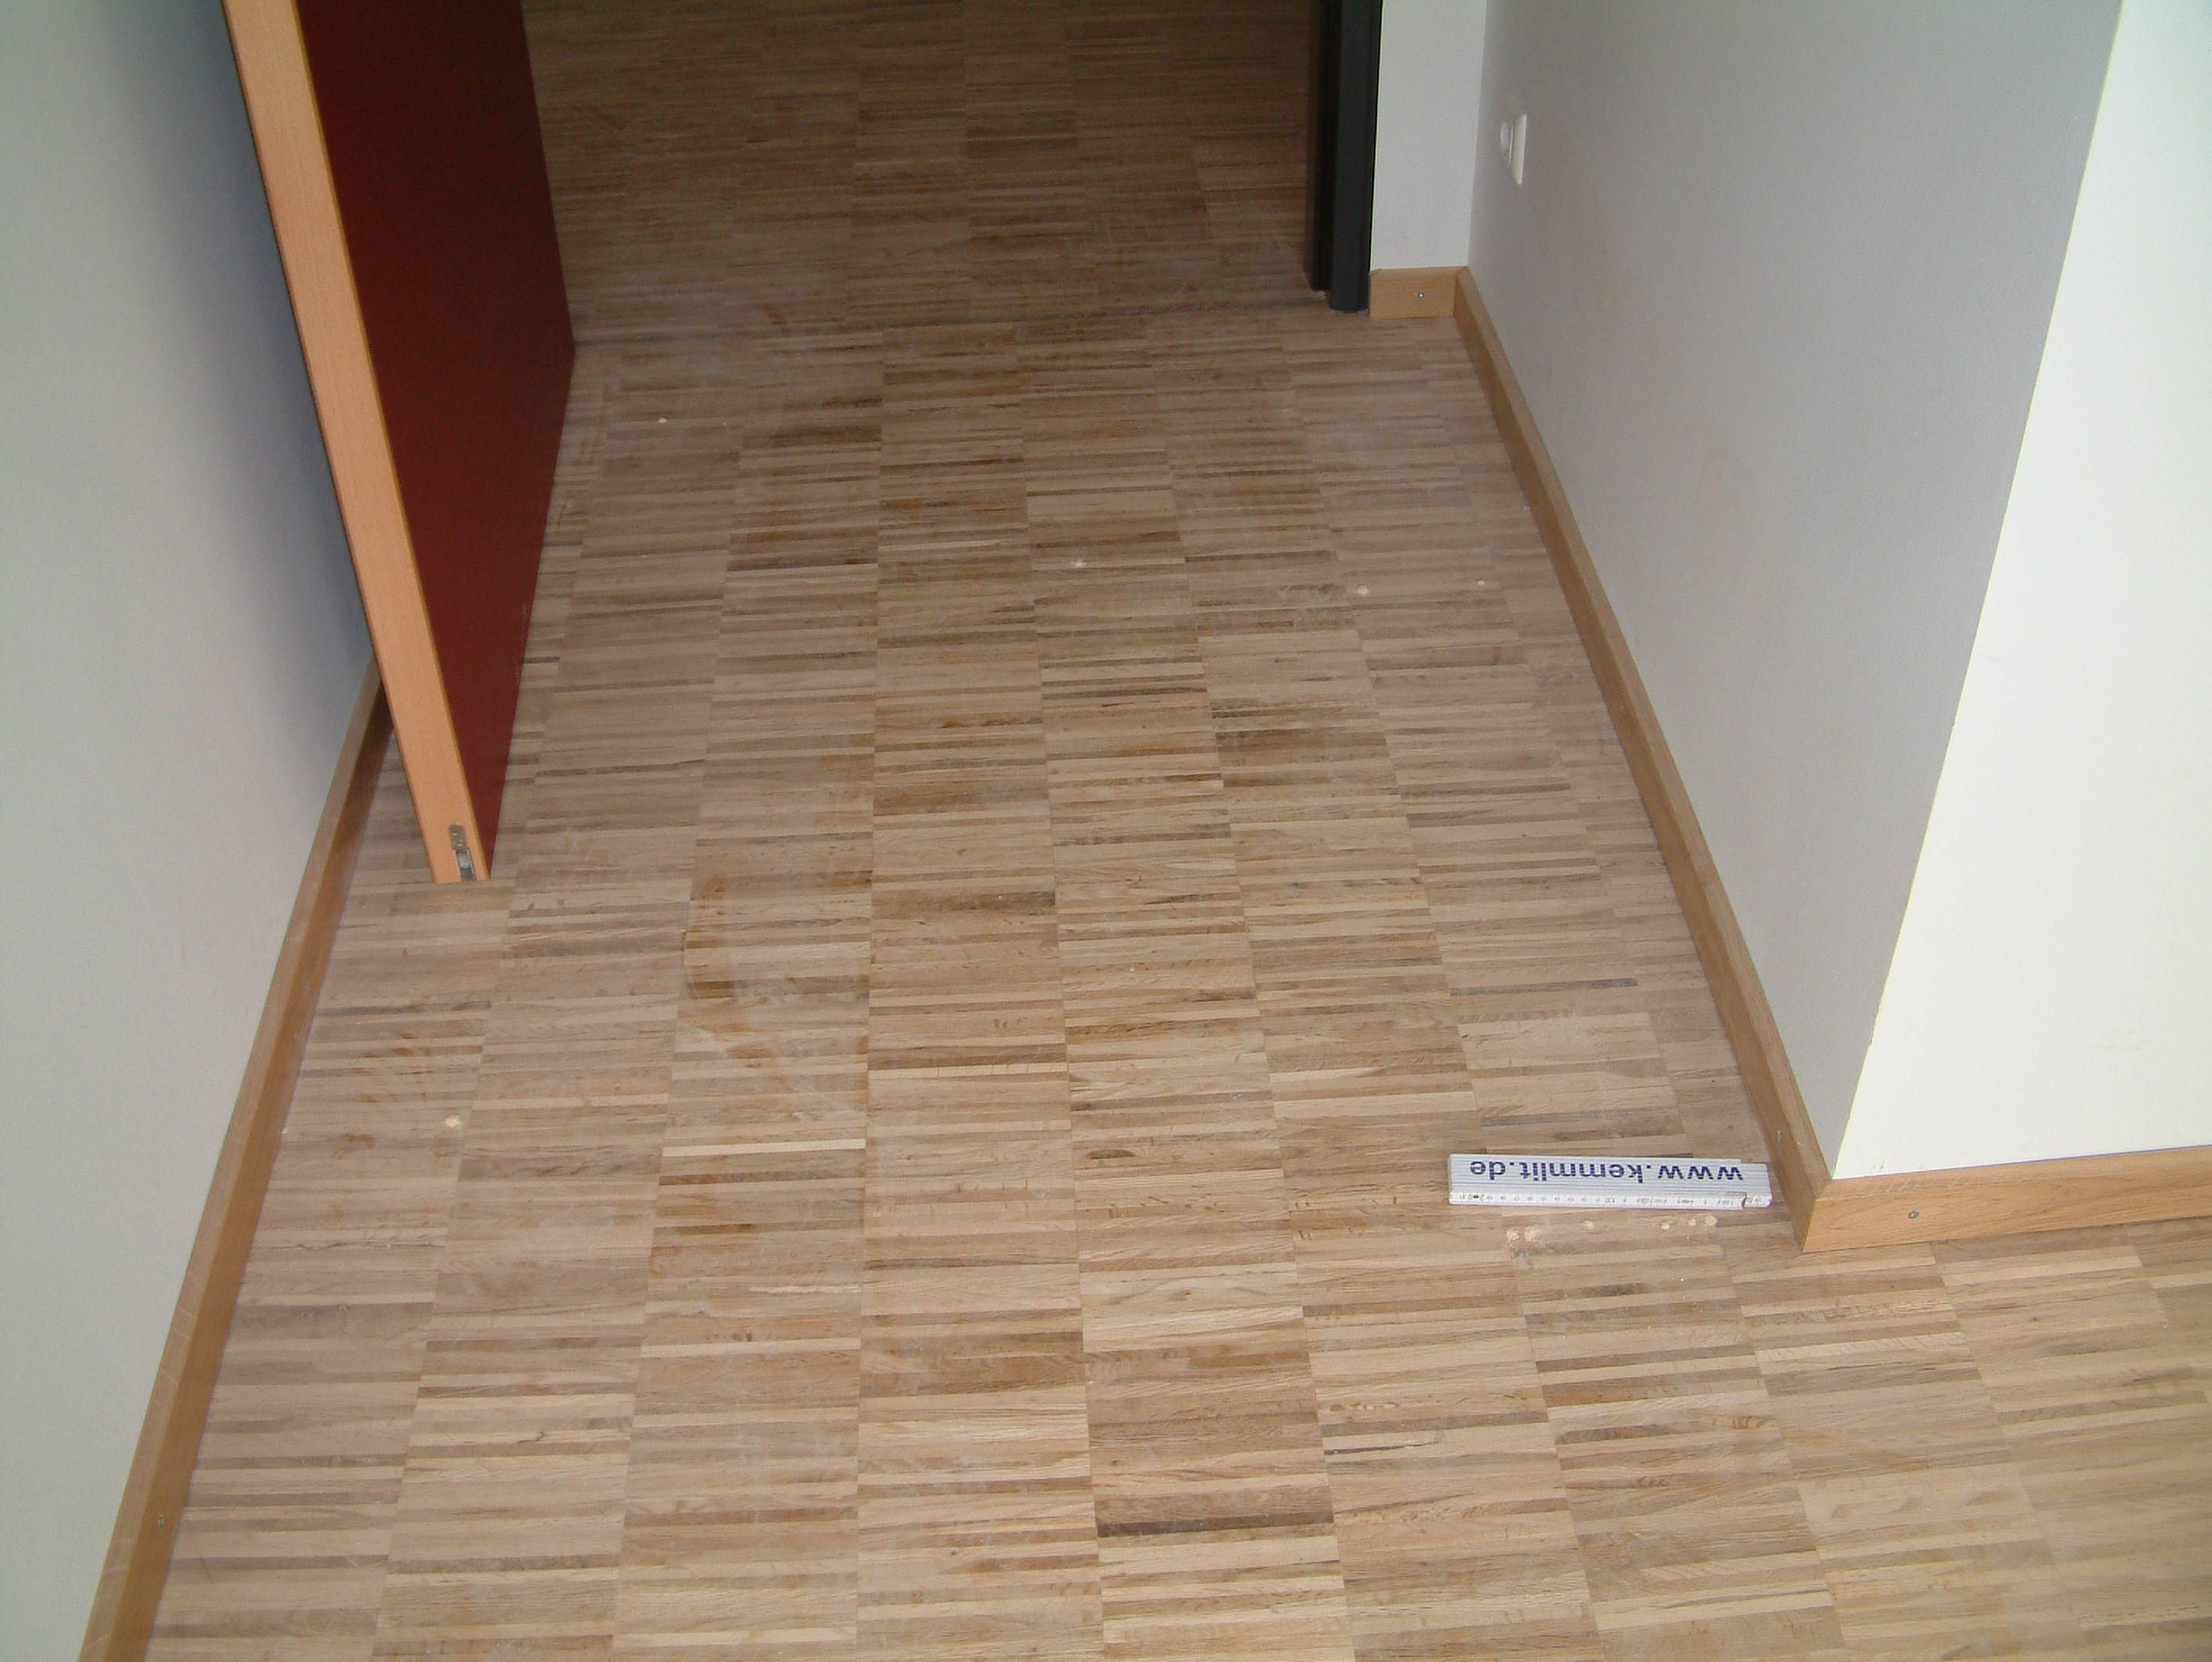 Parquet Industriel Chene - 10 x 16 x 160 mm sur chants - Issoire